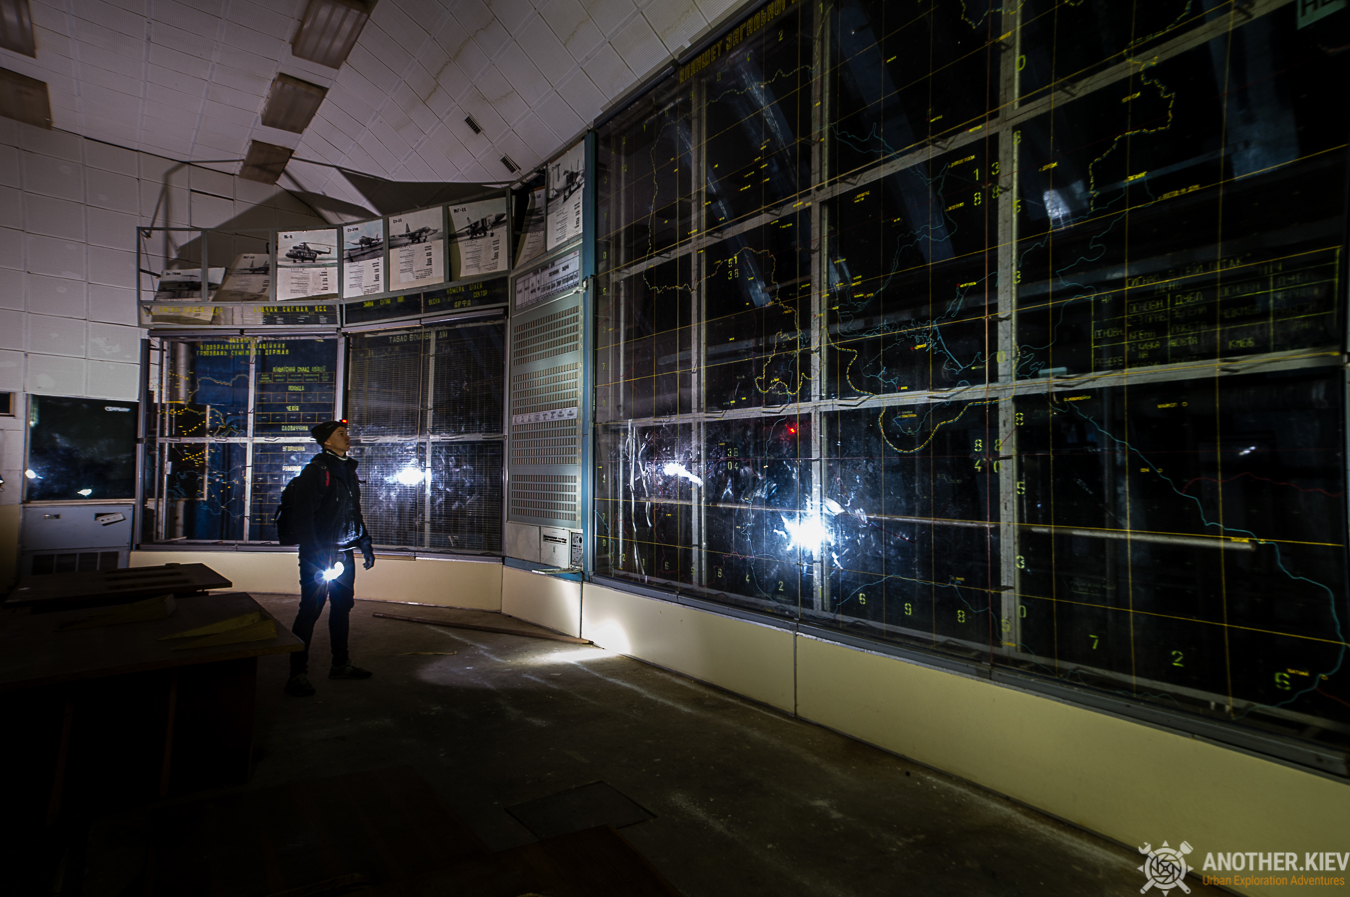 bunker of airforces abandoned